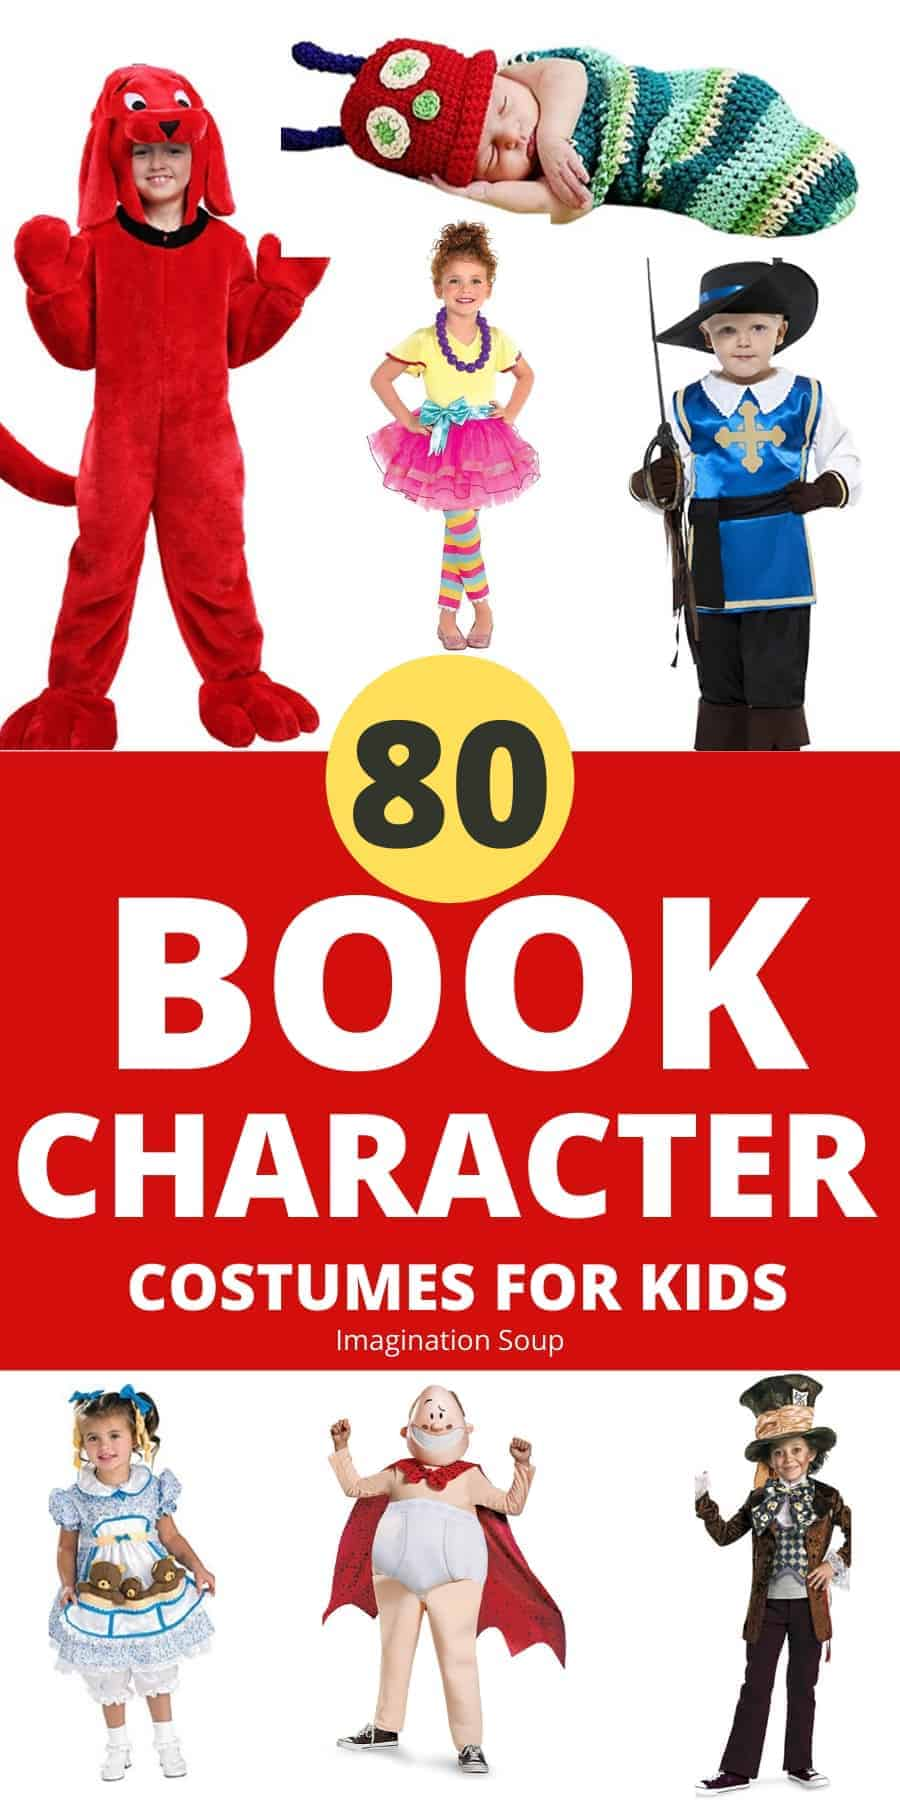 80 book character costumes for kids